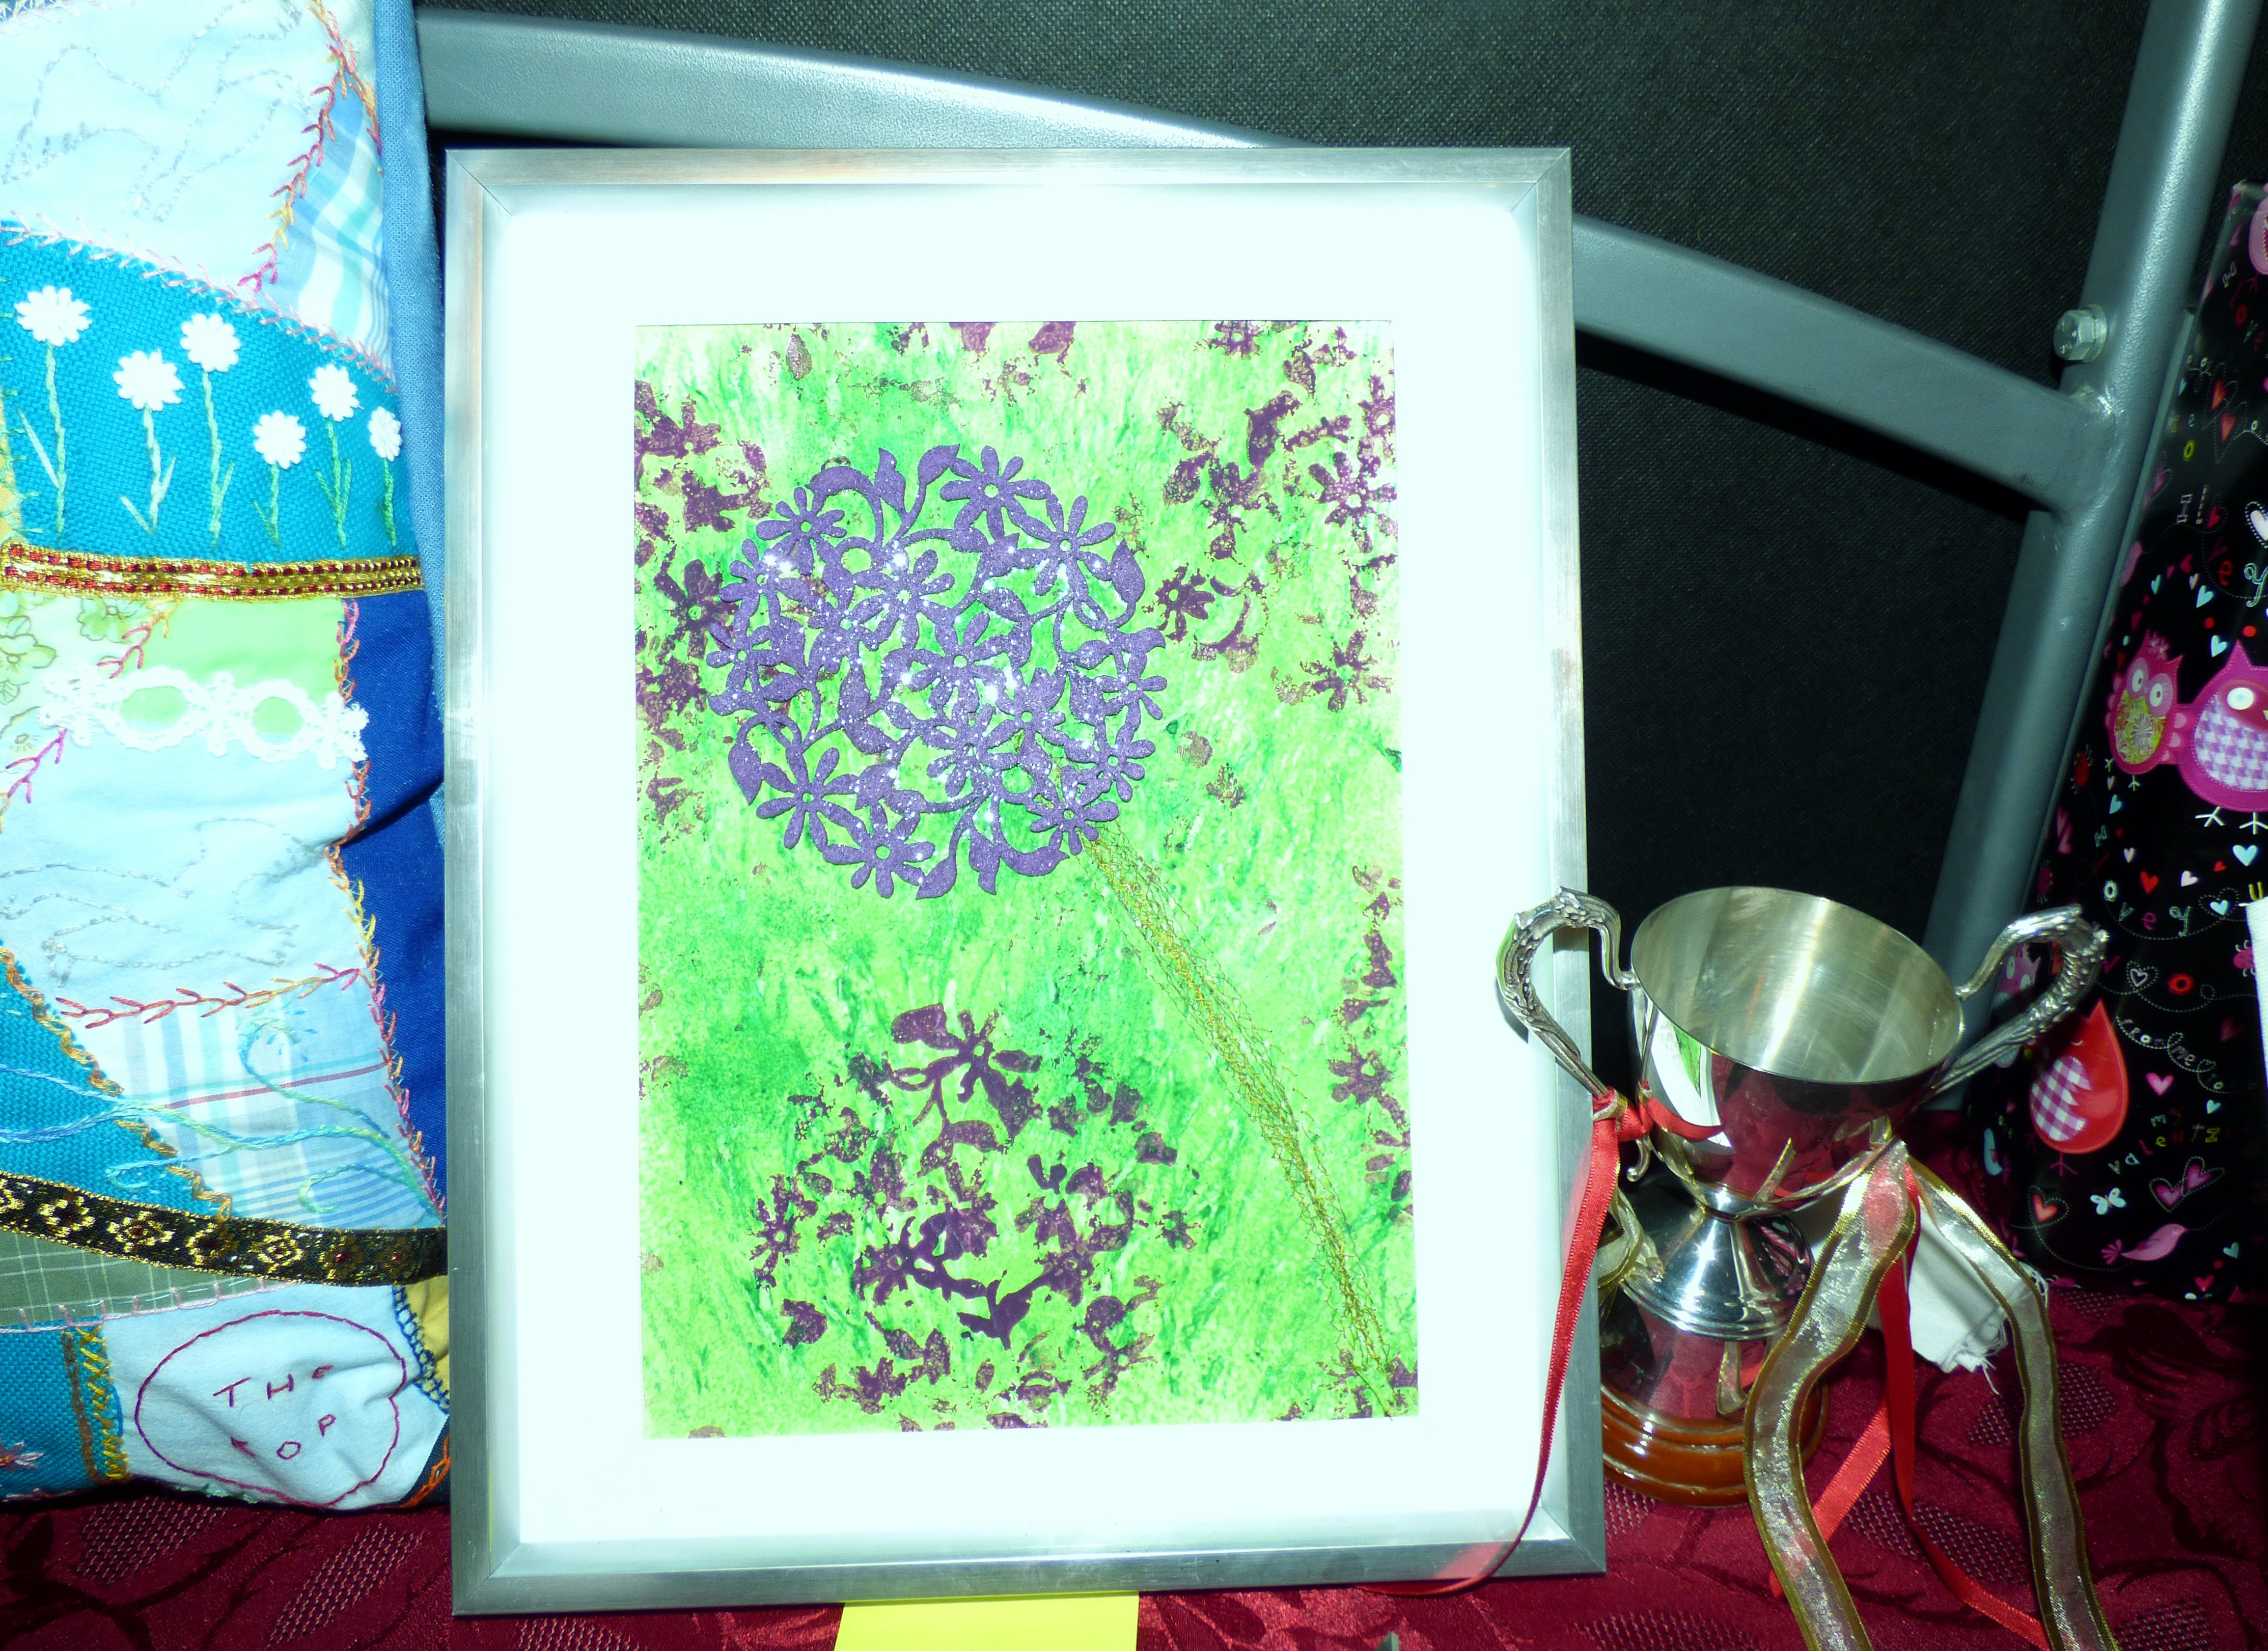 entry to YE competition and cup to be presented to Merseyside Young Embroiderer of the Year at Winter Fair 2016